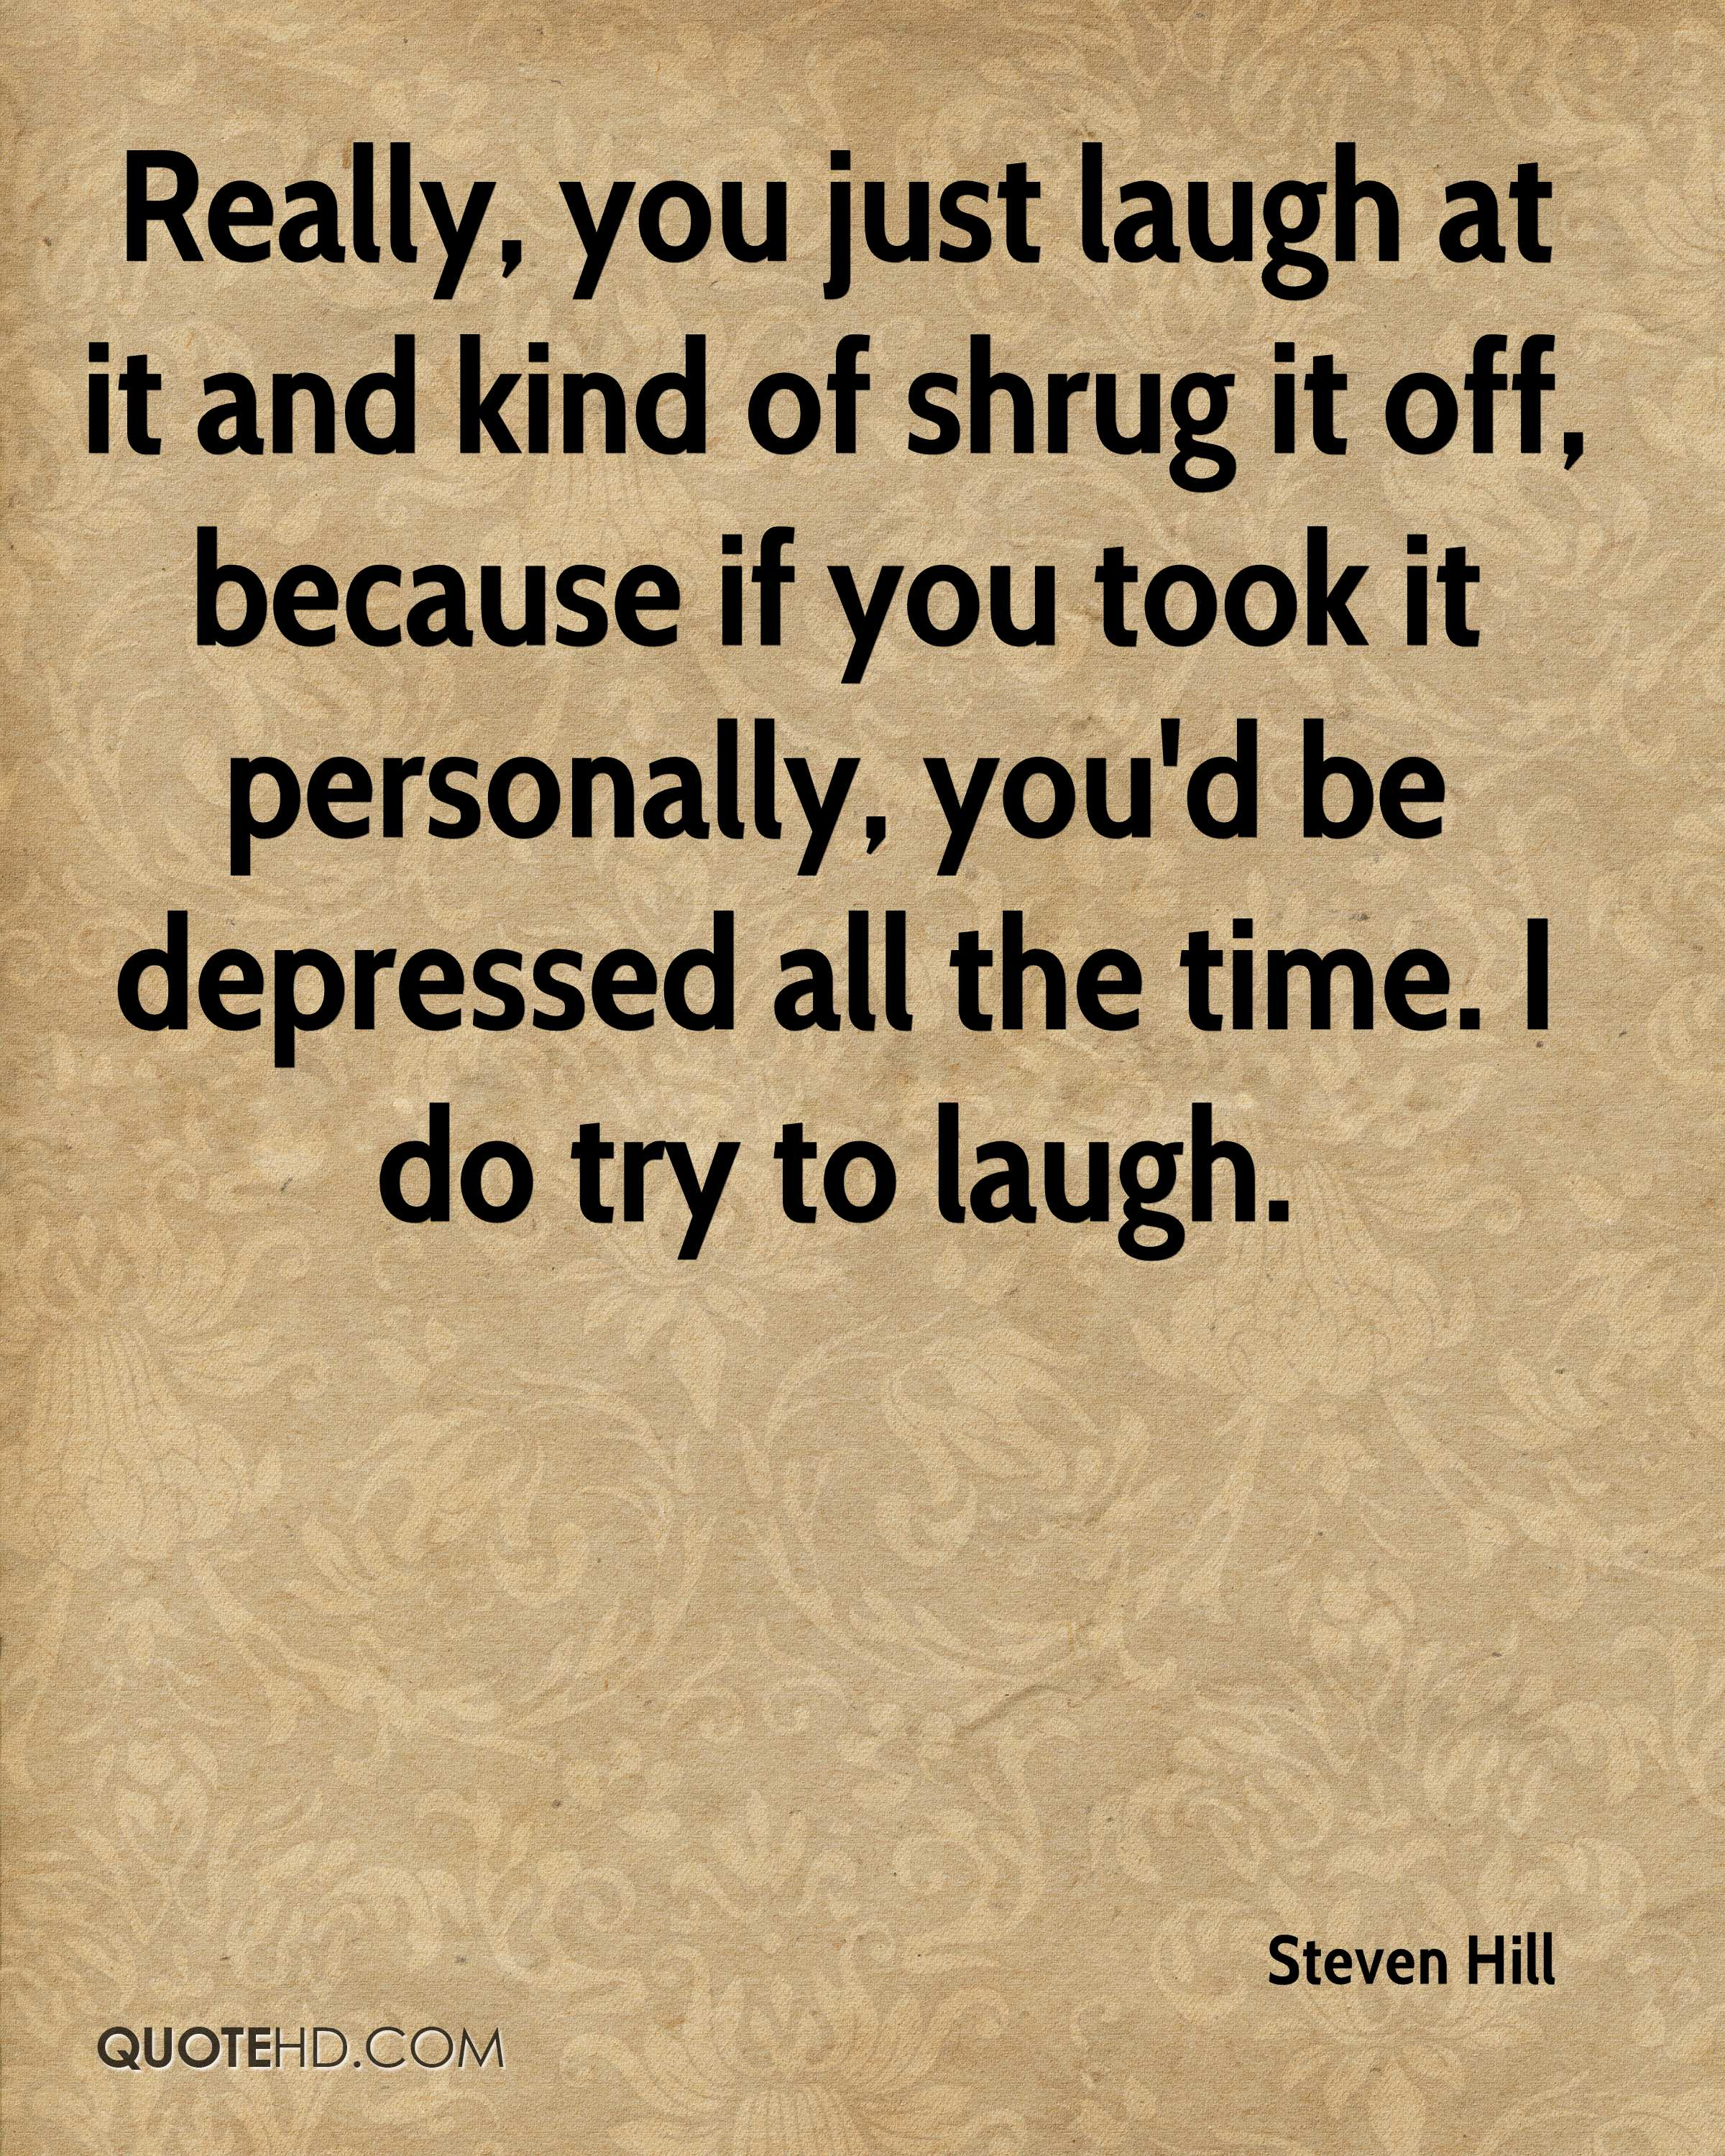 Really, you just laugh at it and kind of shrug it off, because if you took it personally, you'd be depressed all the time. I do try to laugh.